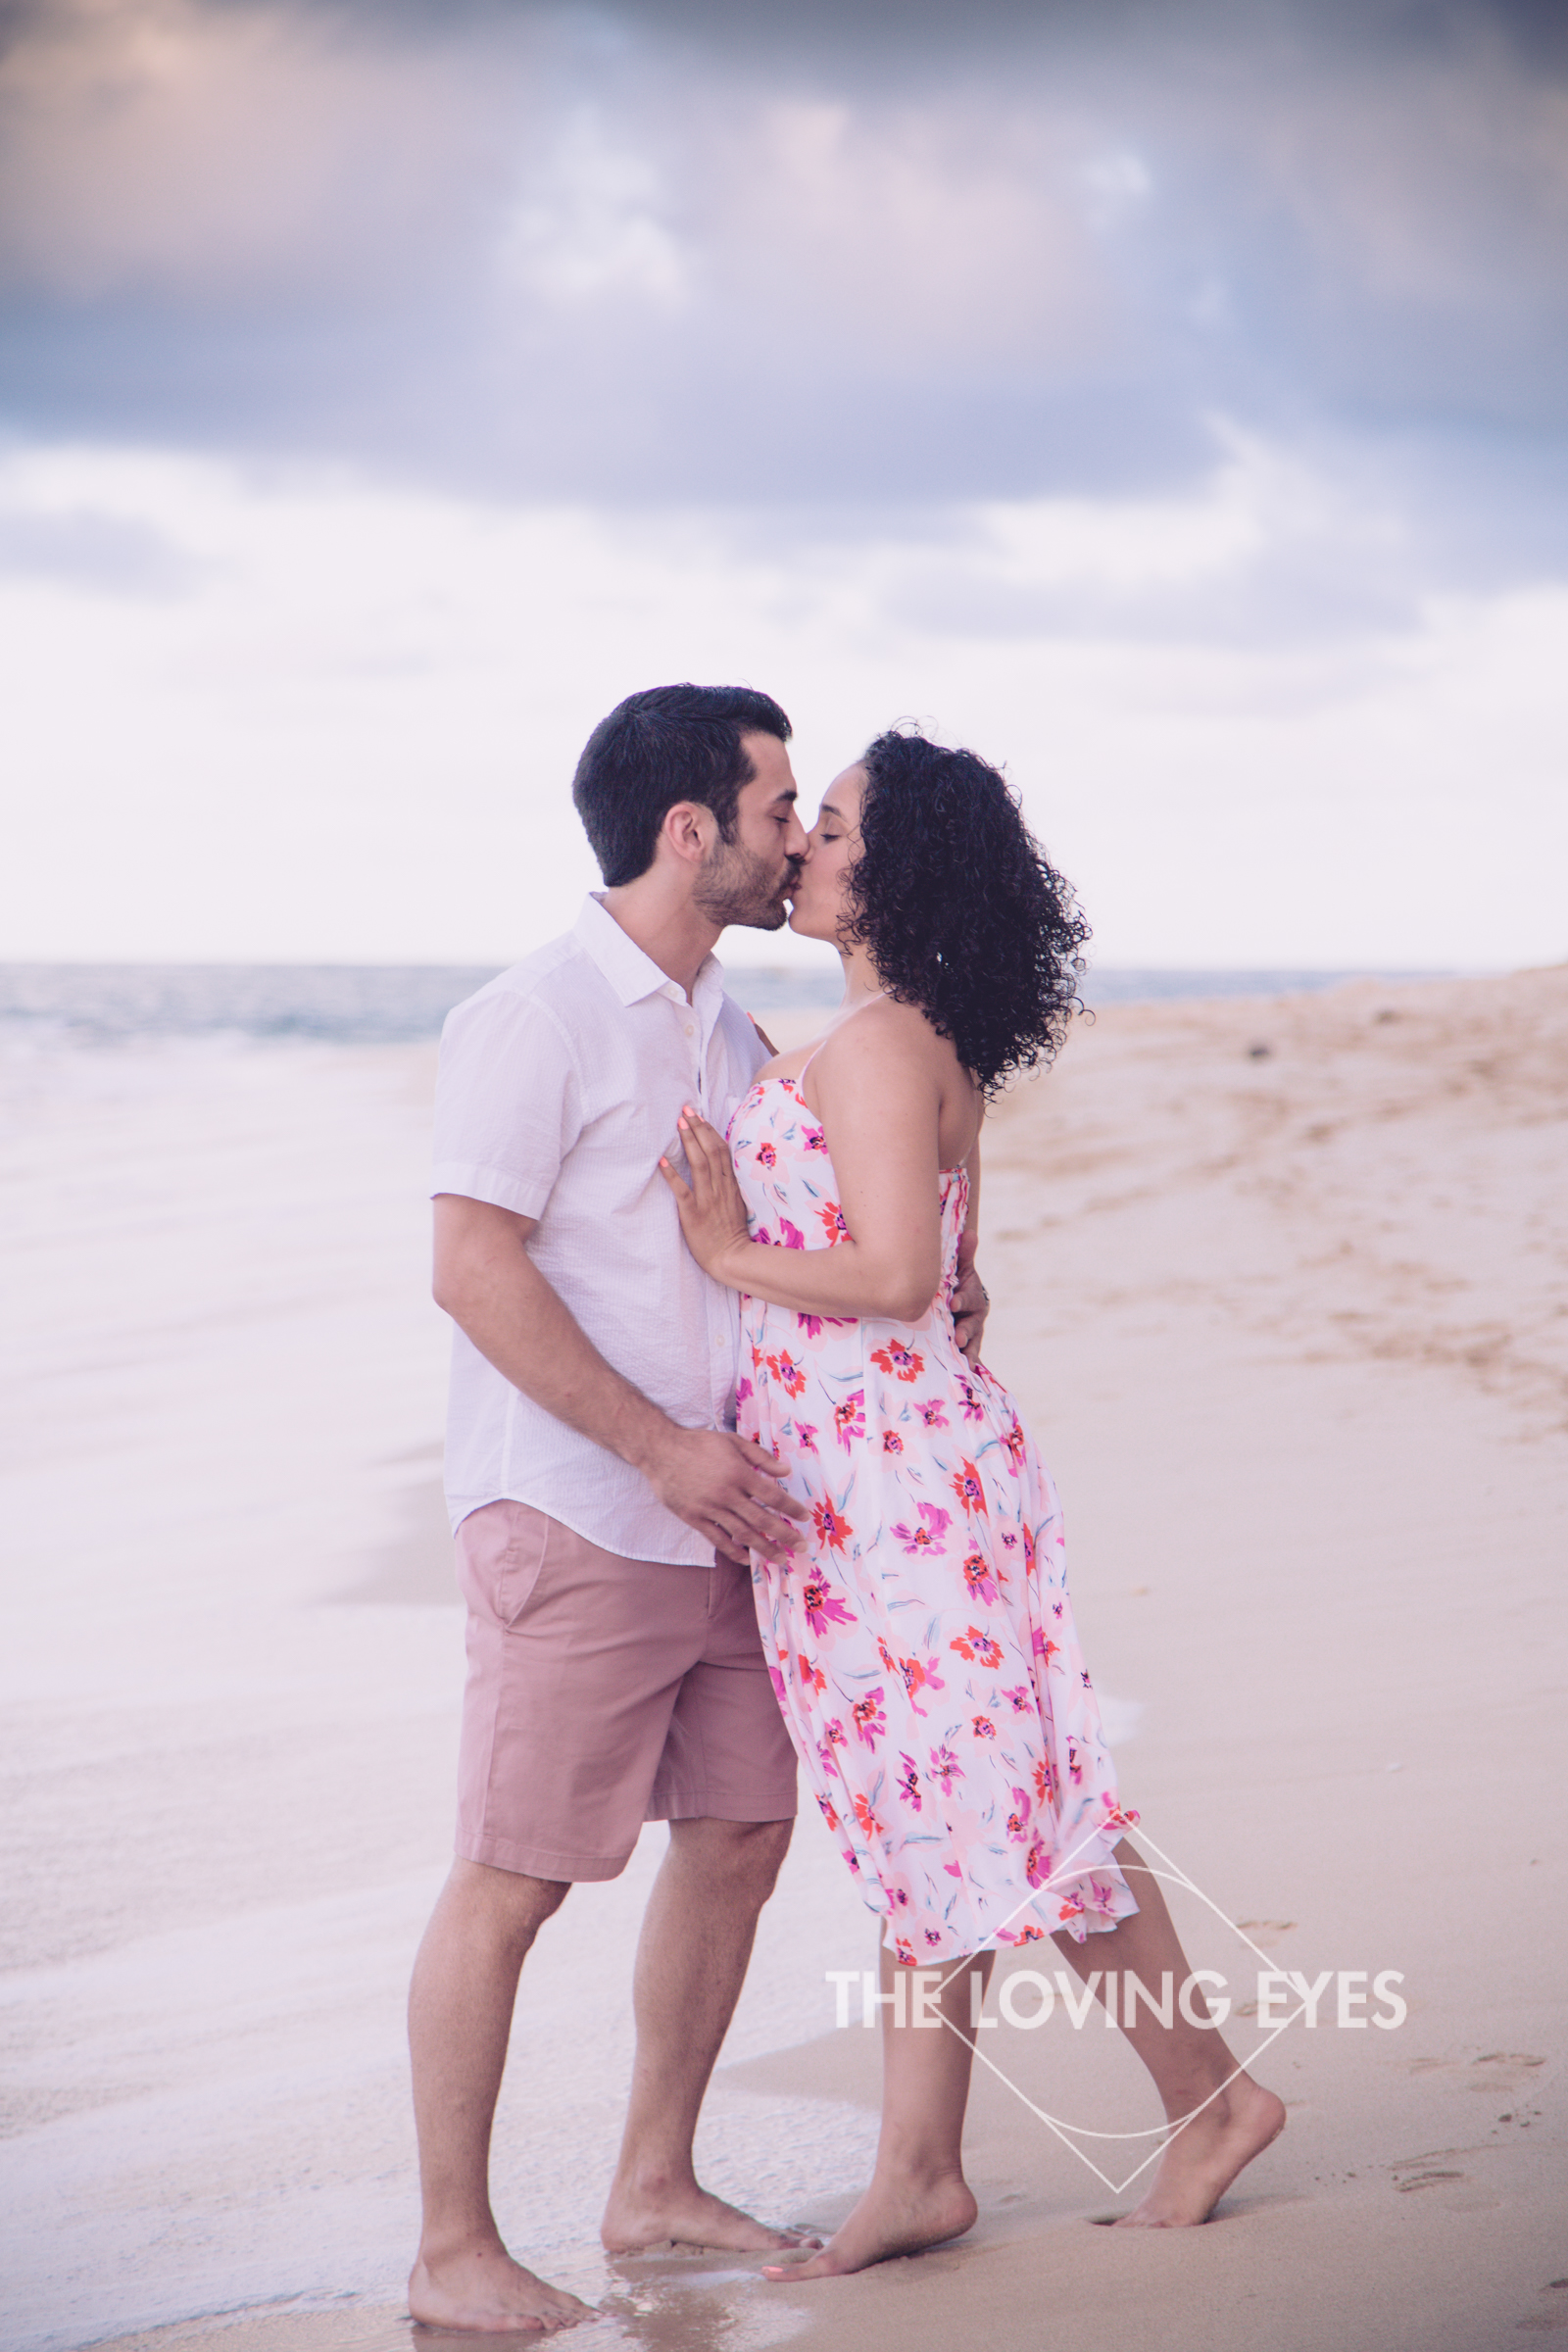 Hawaii-beach-proposal-2.jpg